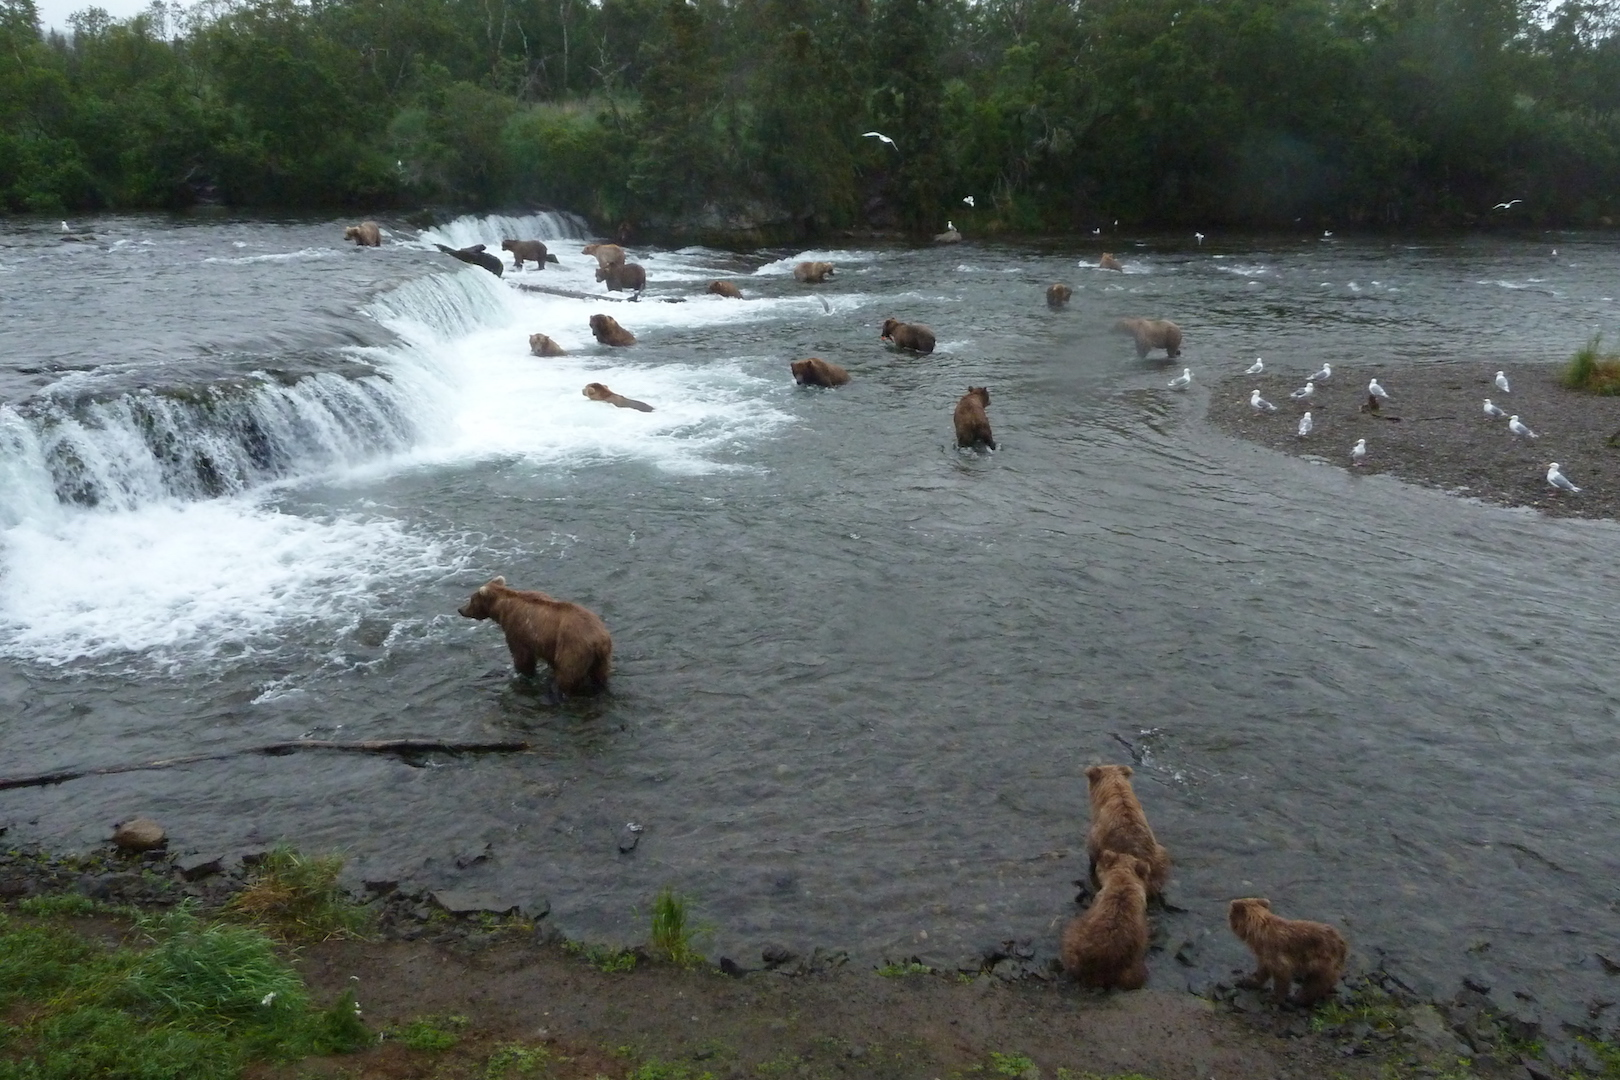 many bears standing and fishing near a waterfall